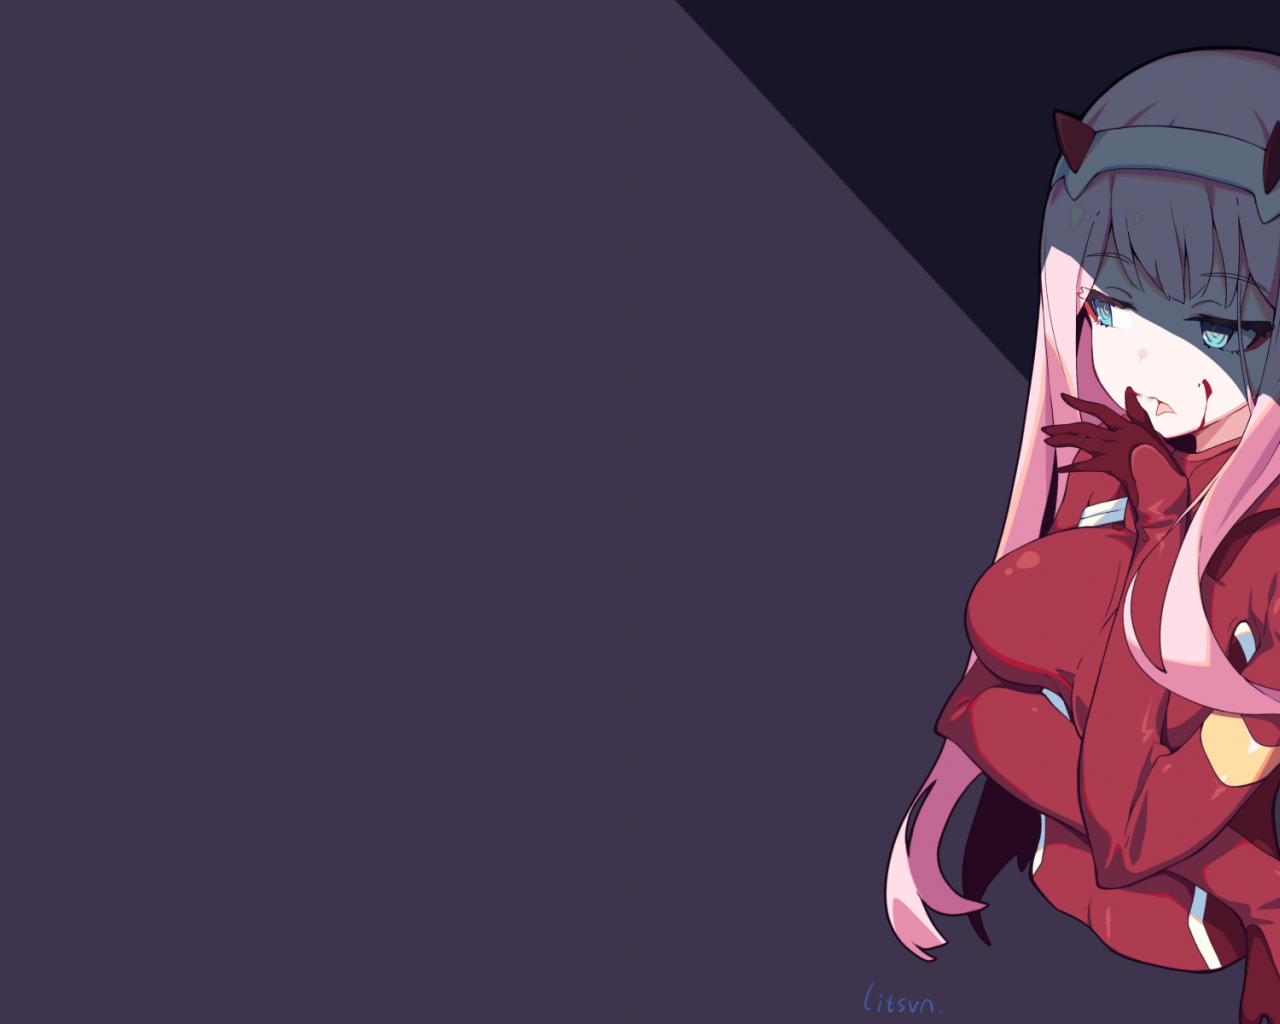 Free Download Darling In The Franxx 4k Ultra Hd Wallpaper And